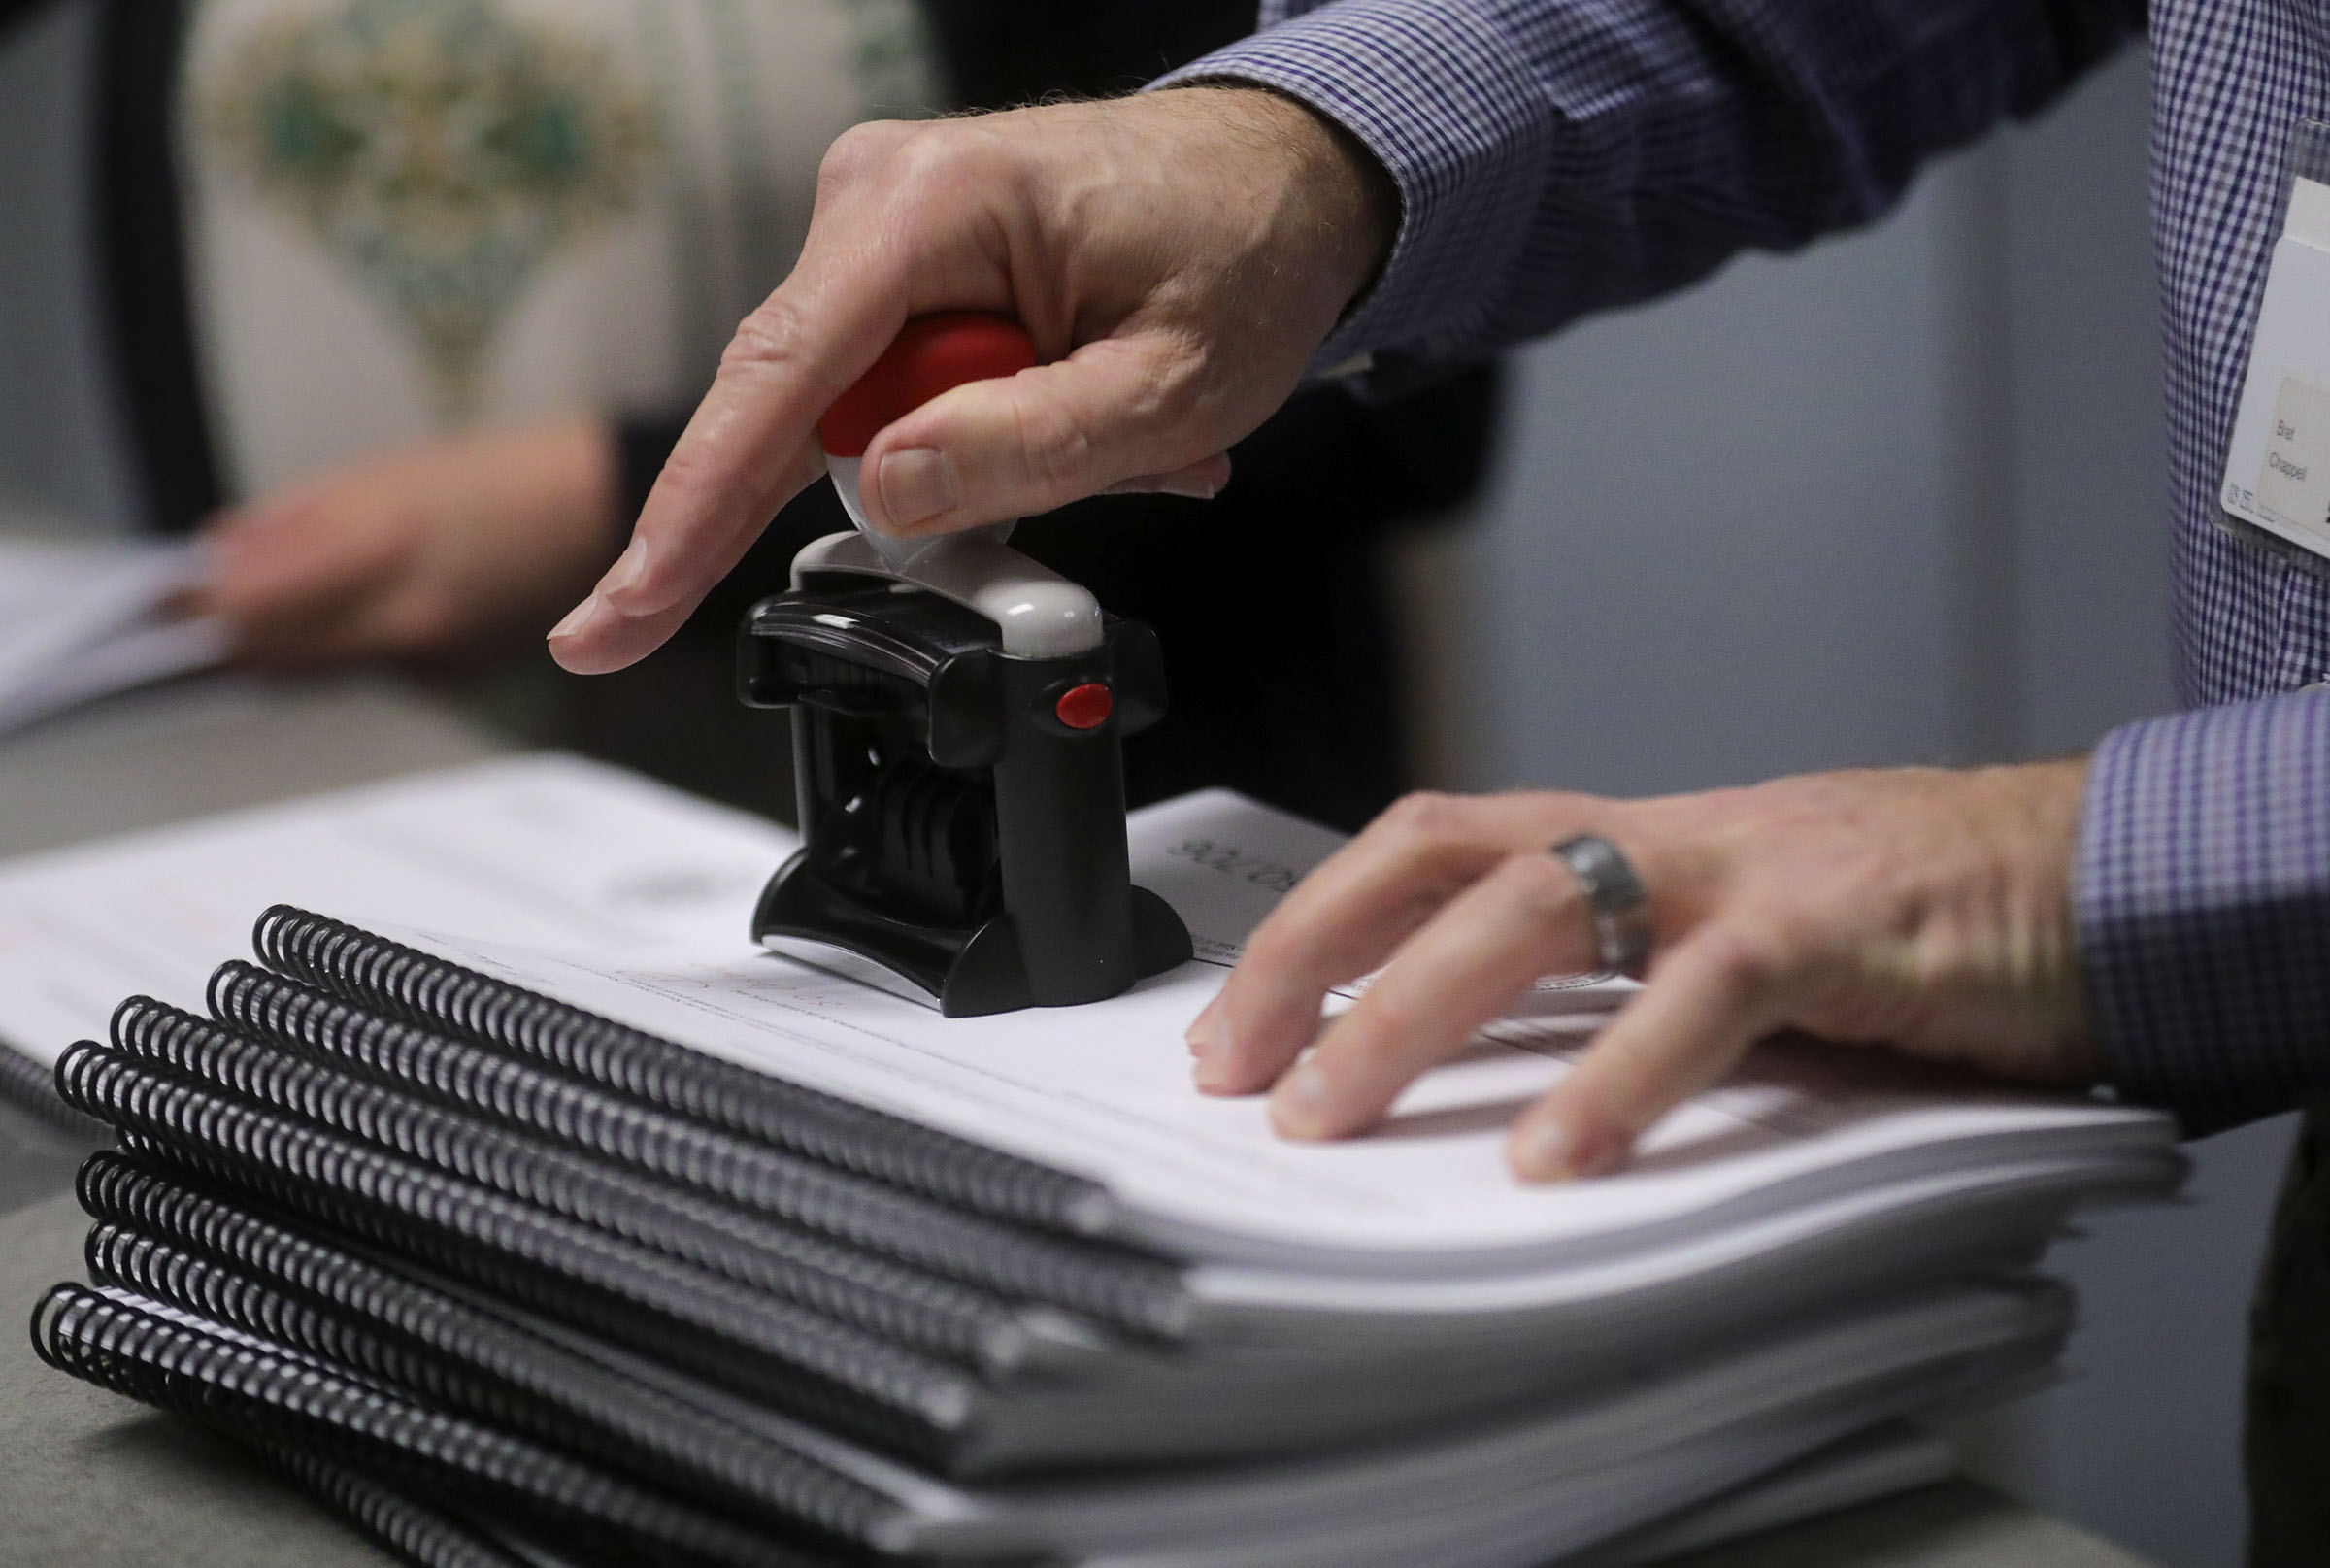 Bret Chappell stamps the received date on packets of signatures for the Utah tax reformreferendum at the Salt Lake County Clerk's Office in Salt Lake City on Tuesday, Jan. 21, 2020.